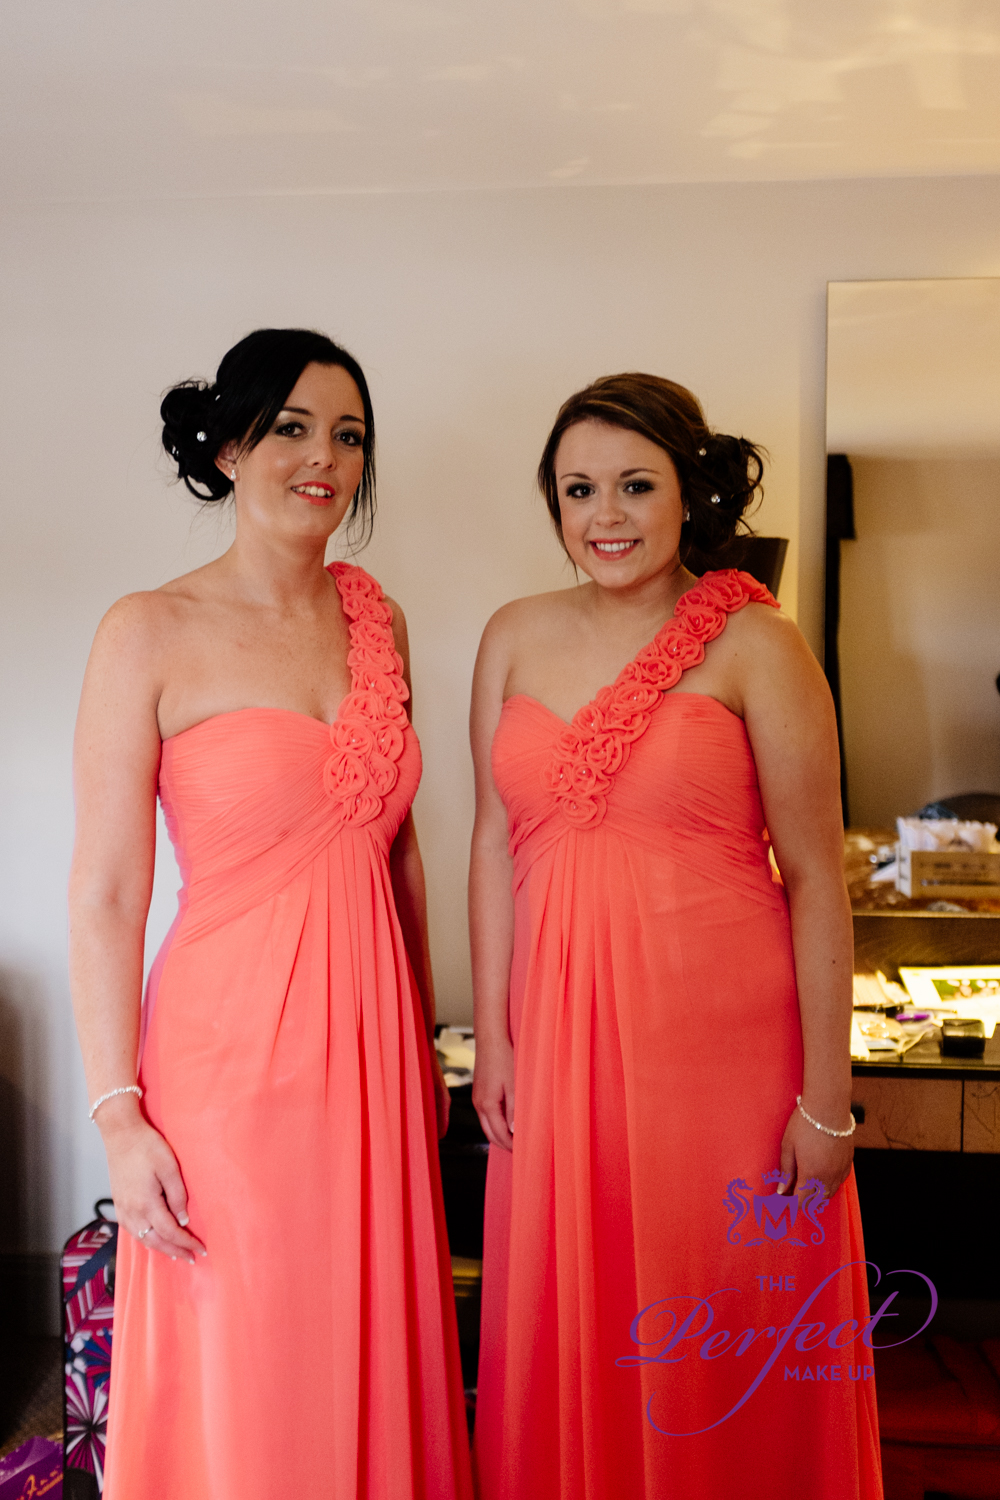 The gorgeous bridesmaids in their coral dresses.